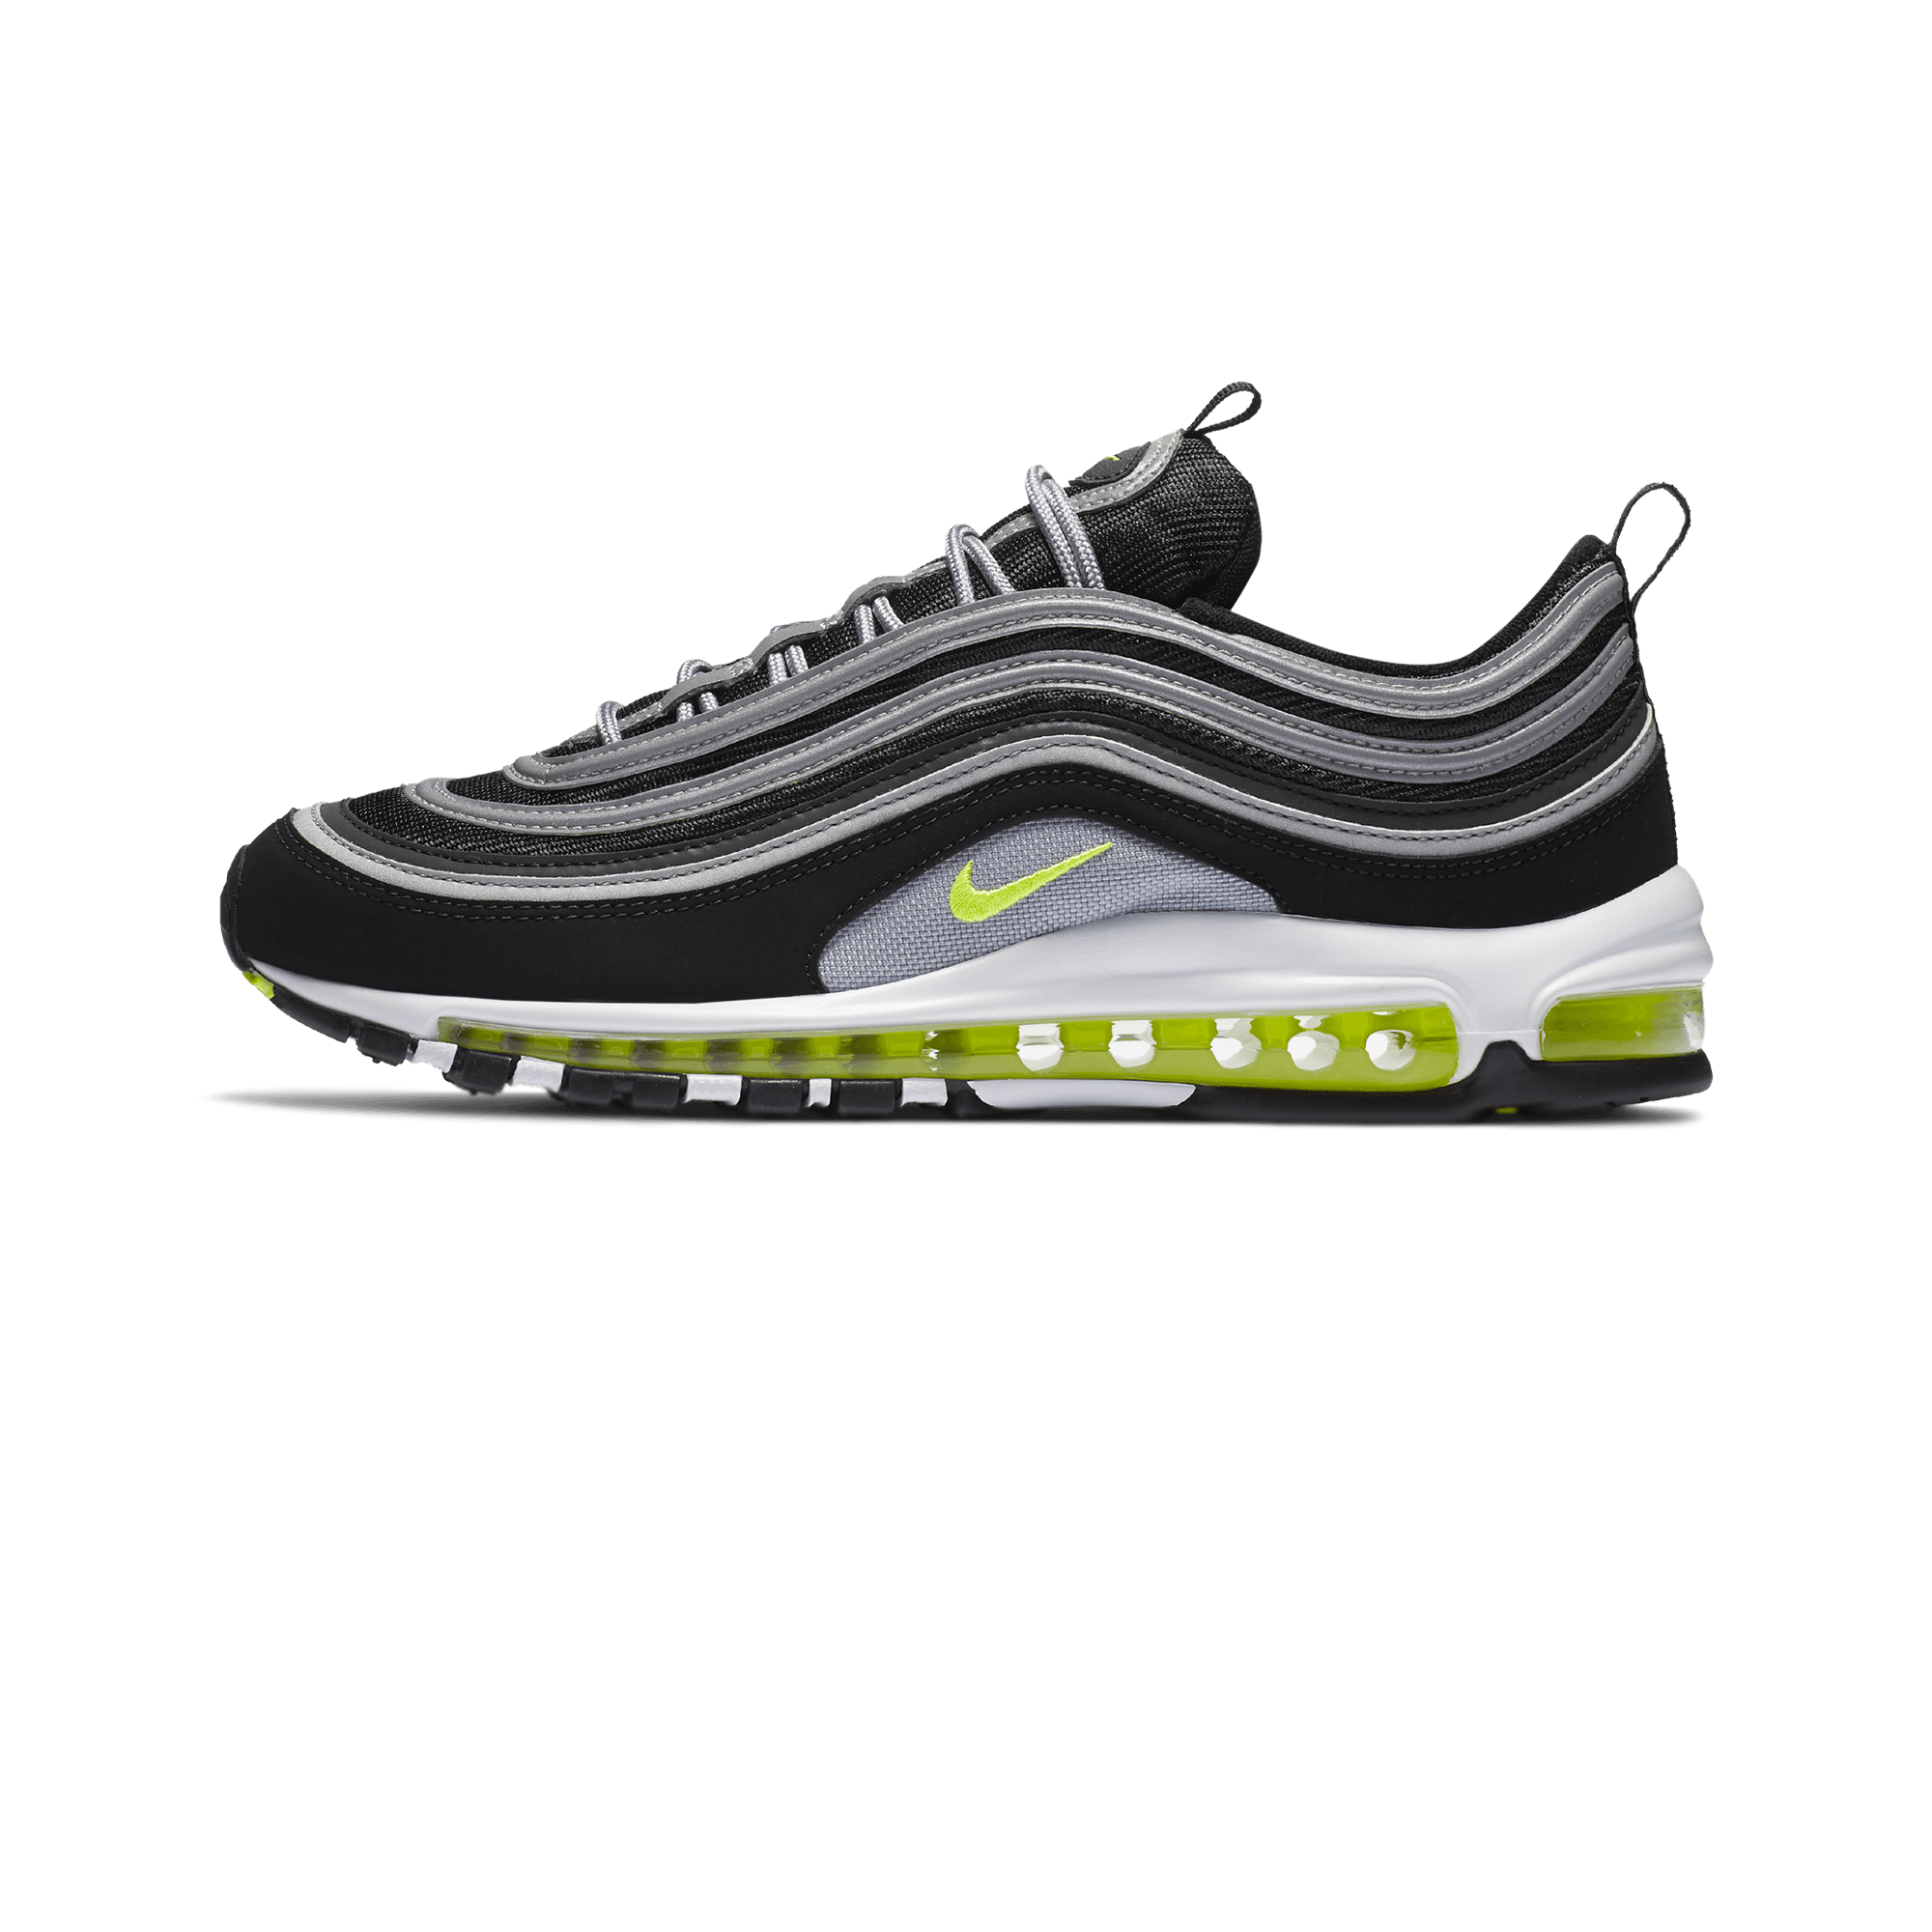 Air Max 97 Japan OG black/volt